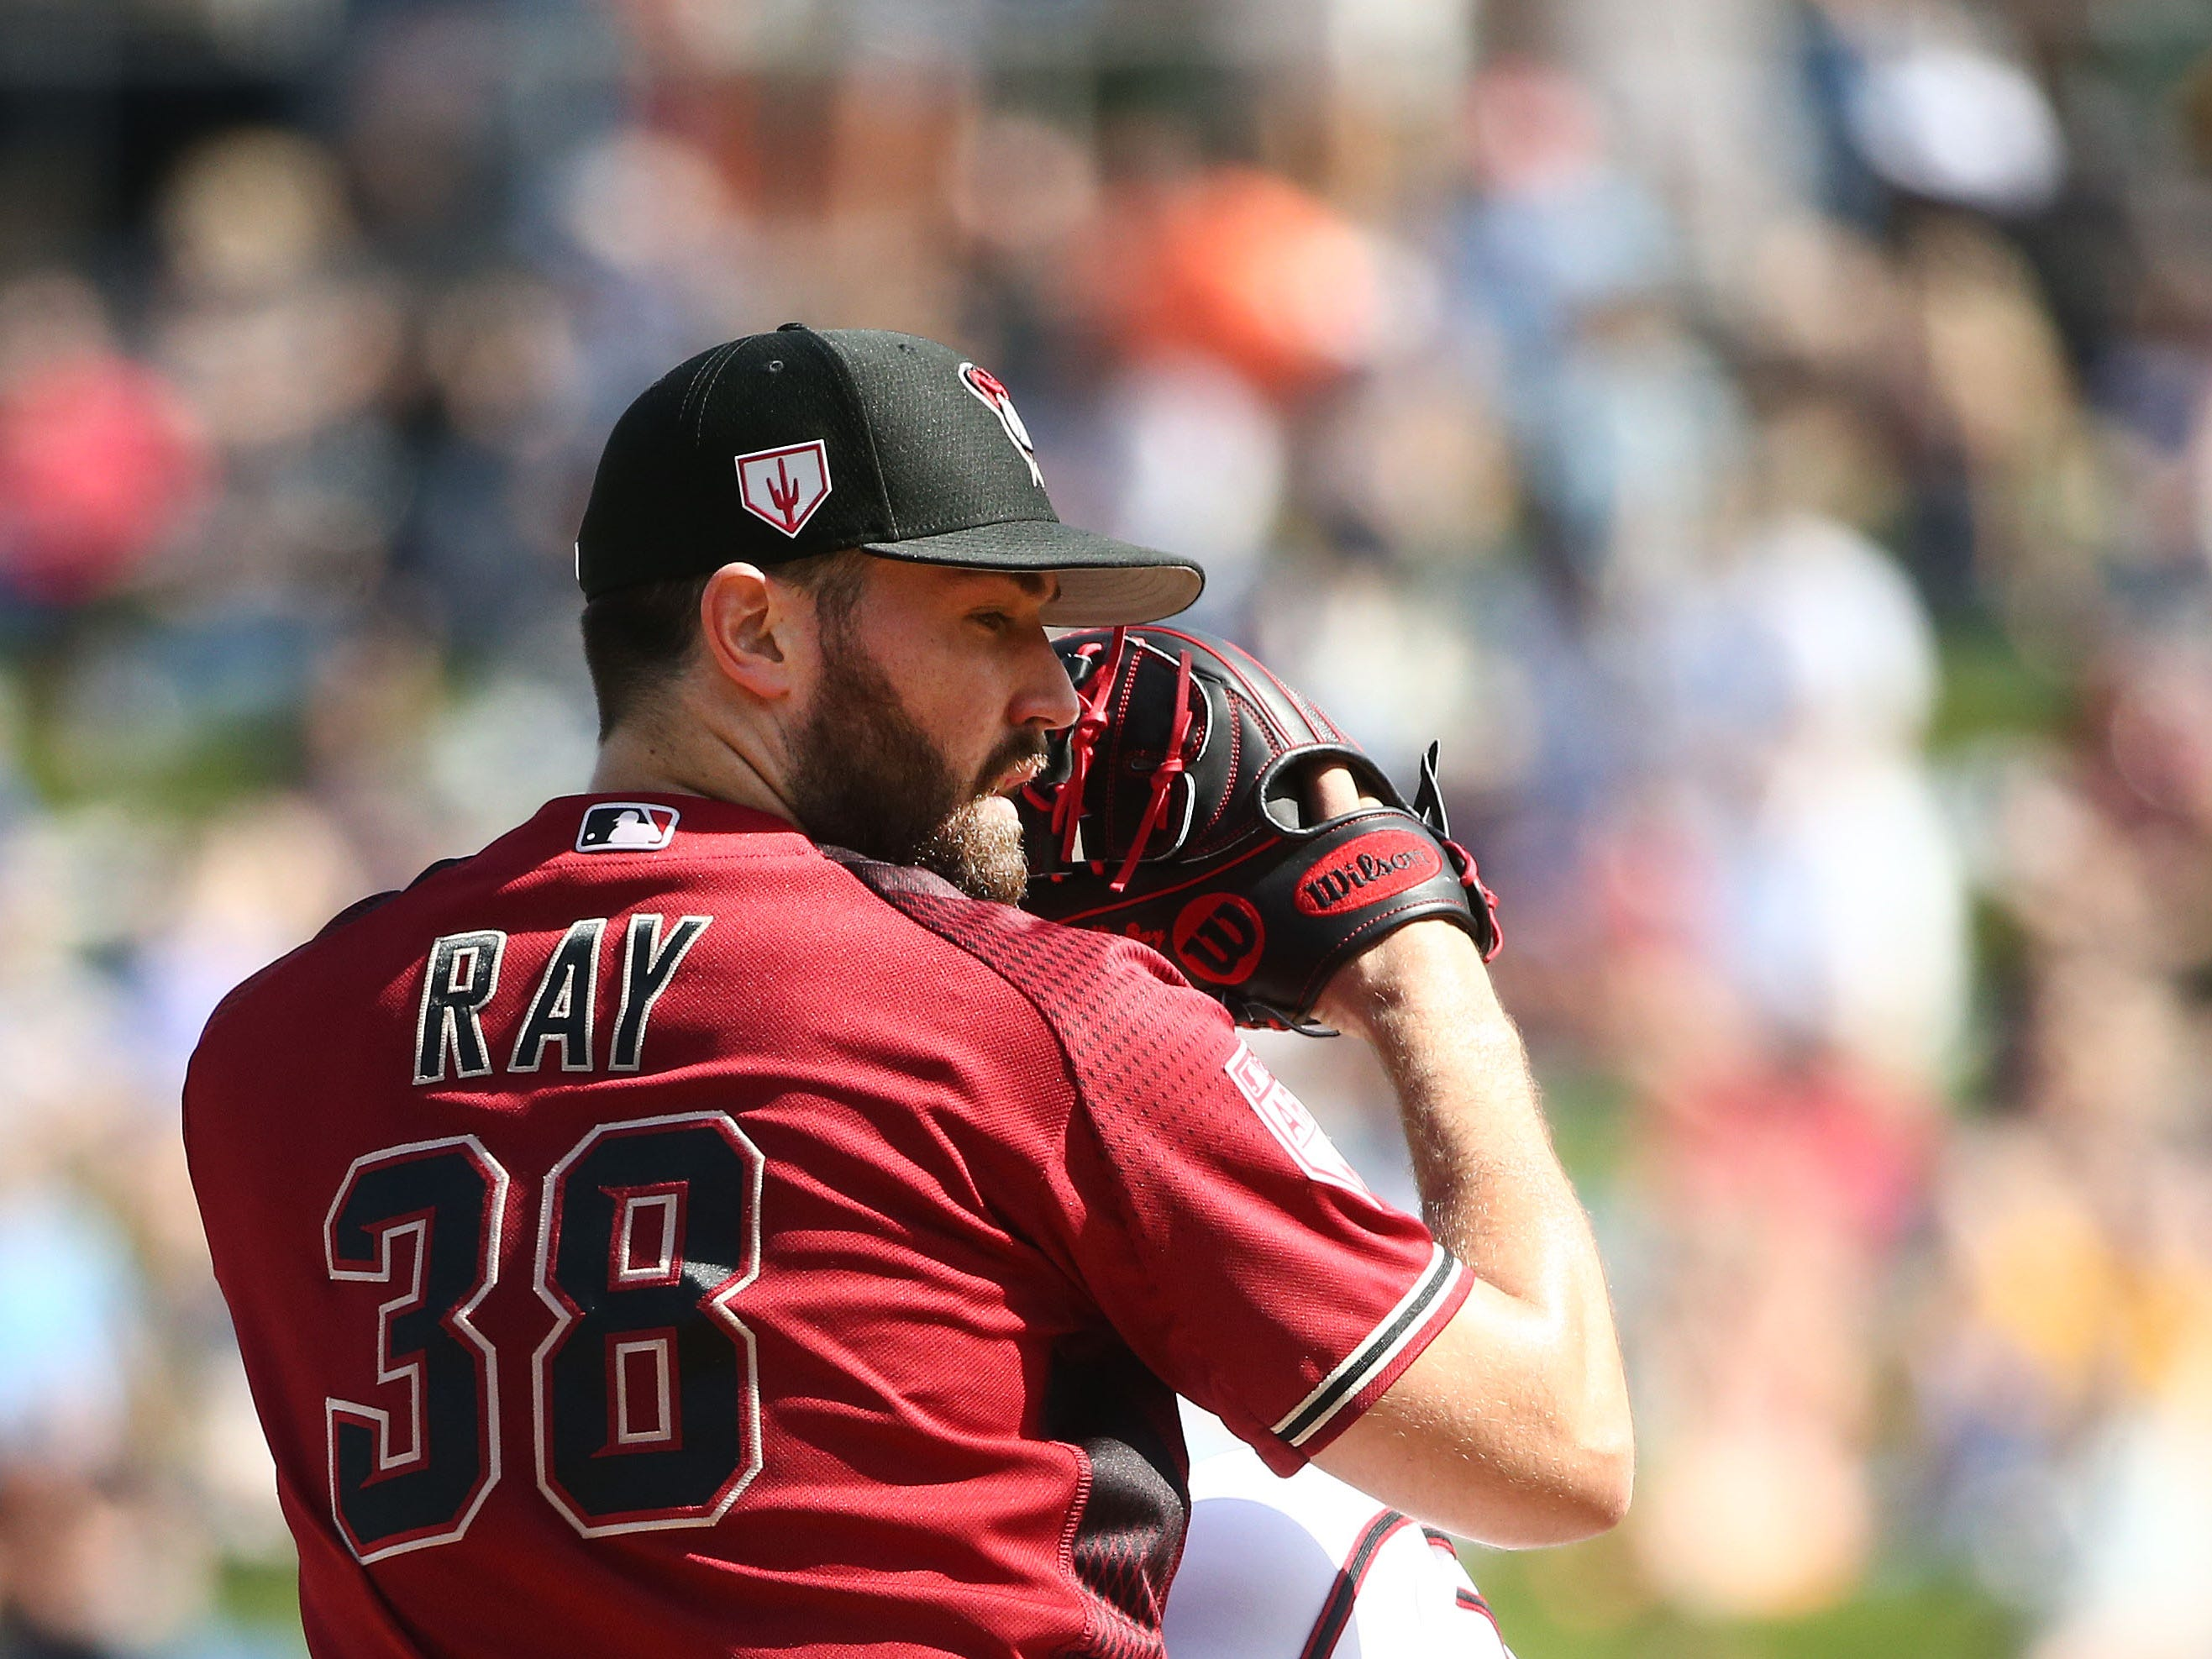 Arizona Diamondbacks pitcher Robbie Ray throws to the Chicago Cubs in the second inning during a spring training game on Mar. 1, 2019 at Salt River Fields in Scottsdale, Ariz.